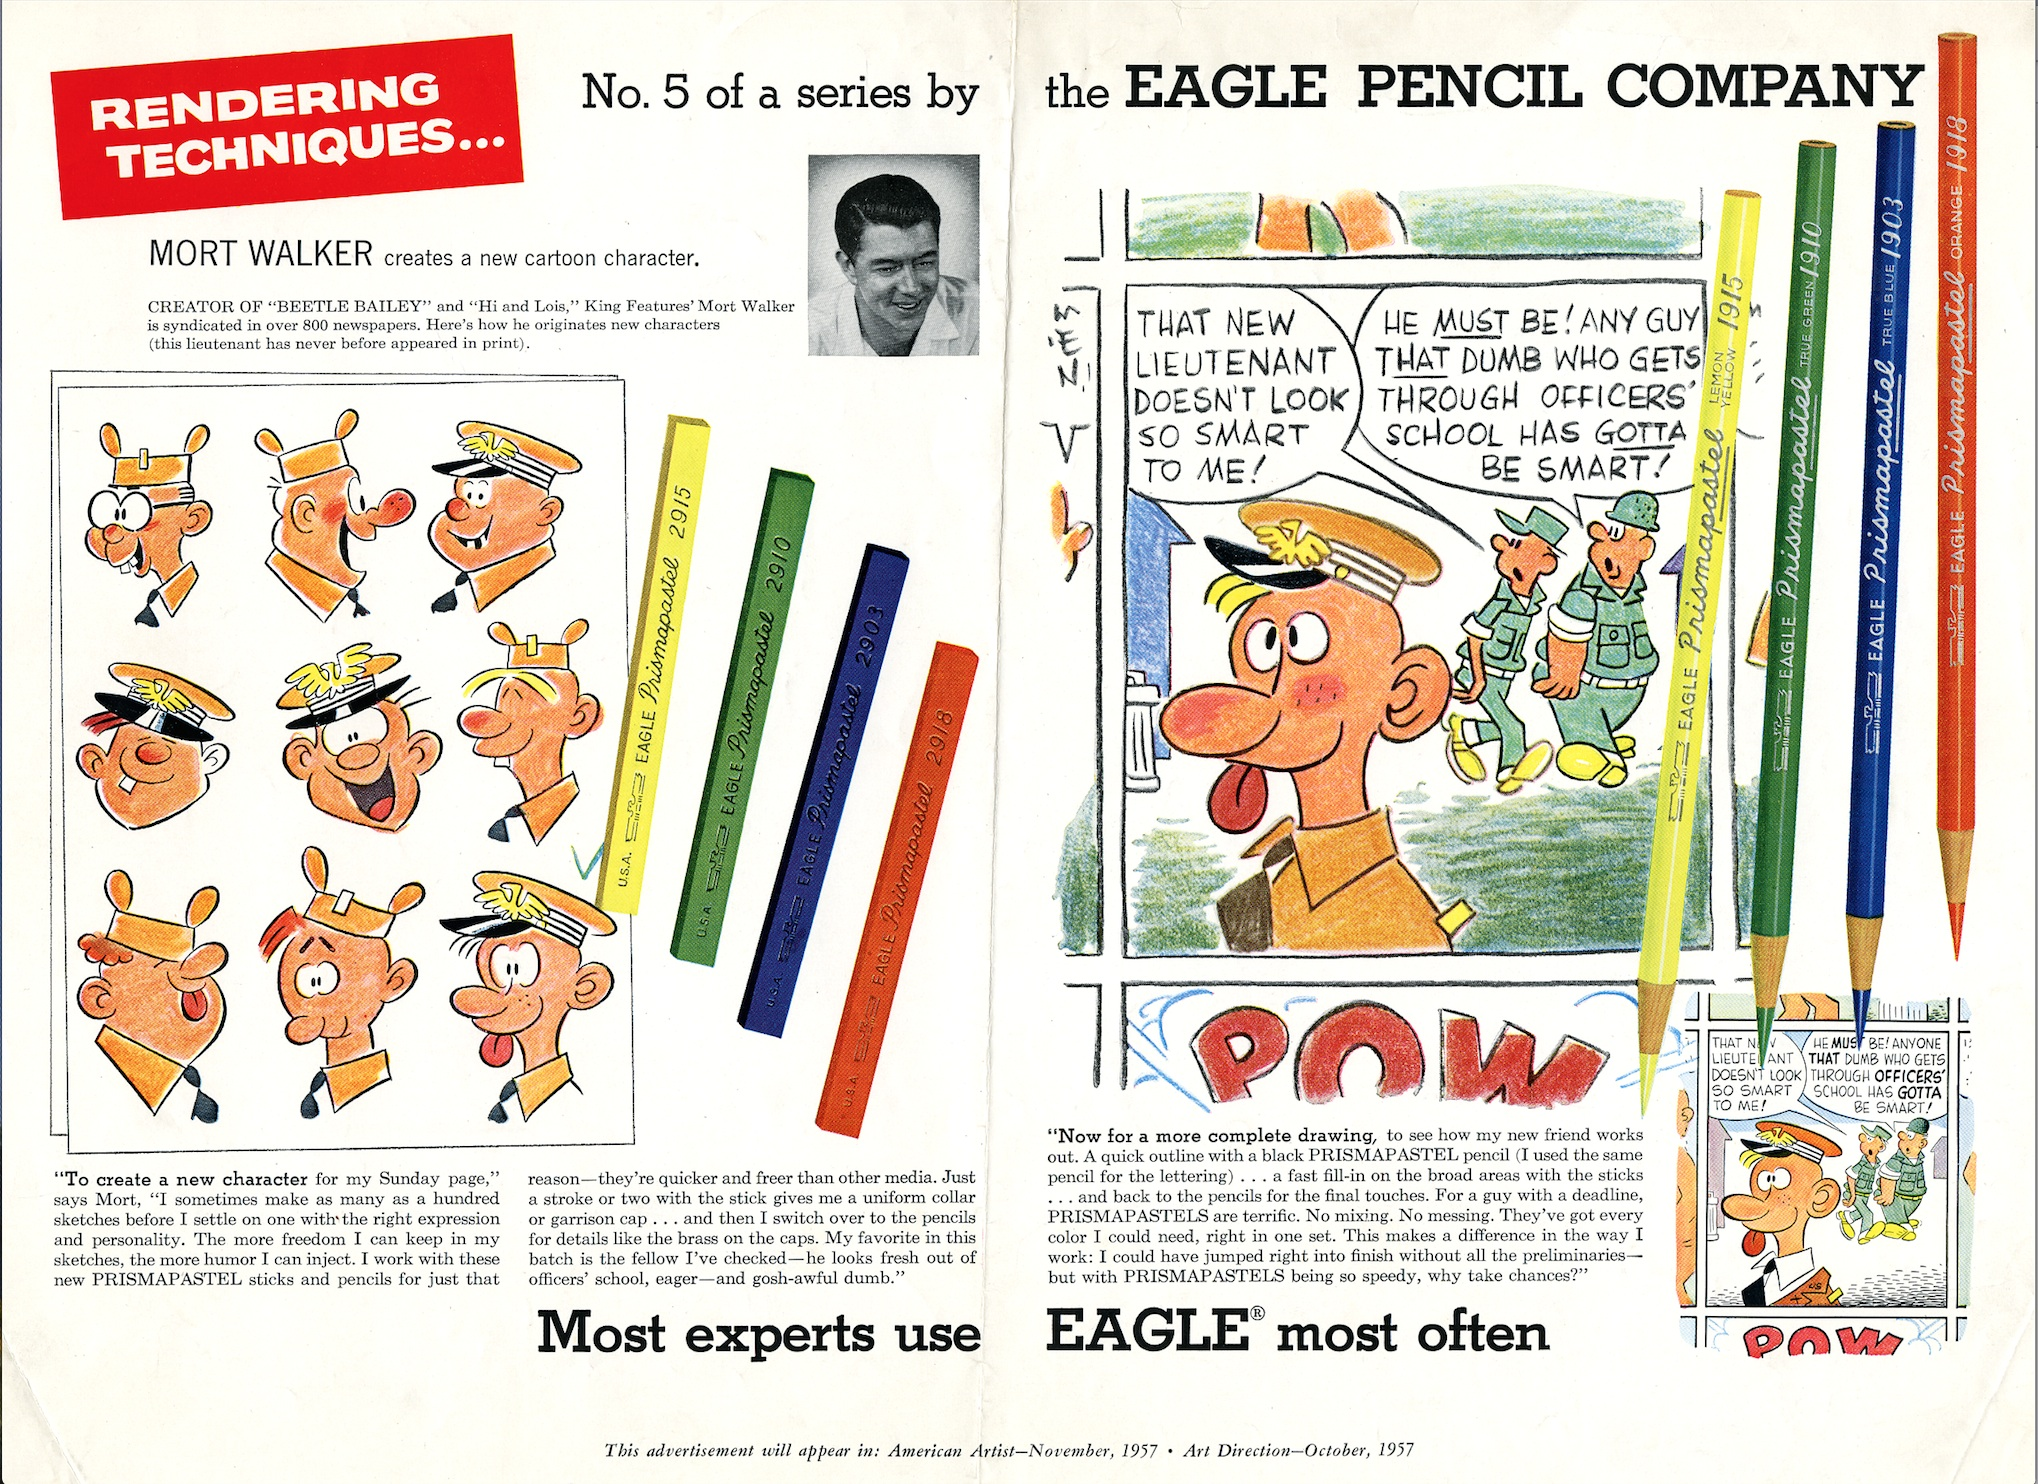 Advertisement for Eagle Pencil Company by Mort Walker, 1957.